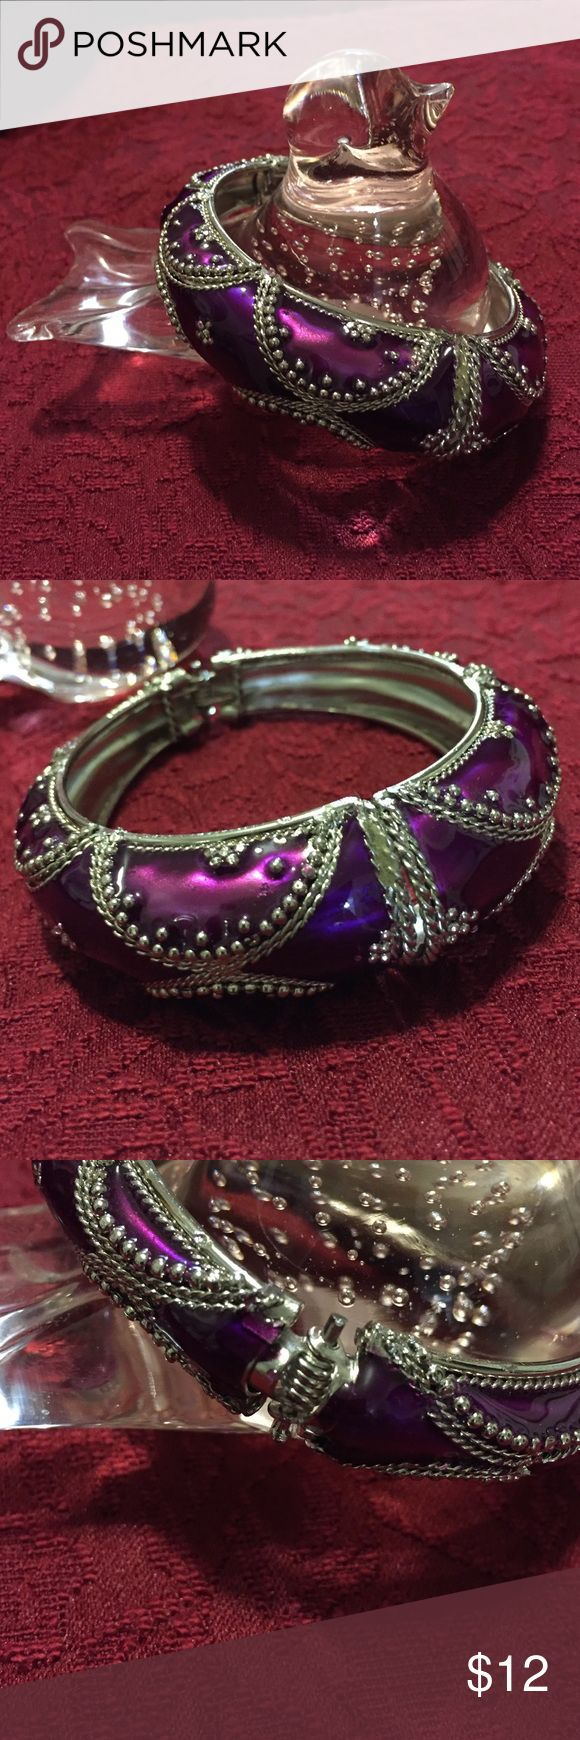 """Purple & Silver Colored Bracelet This gorgeous purple & silver bracelet is high quality """"costume jewelry"""" that, at a distance, looks Ike the """"real deal.""""  Unknown Jewelry Bracelets"""